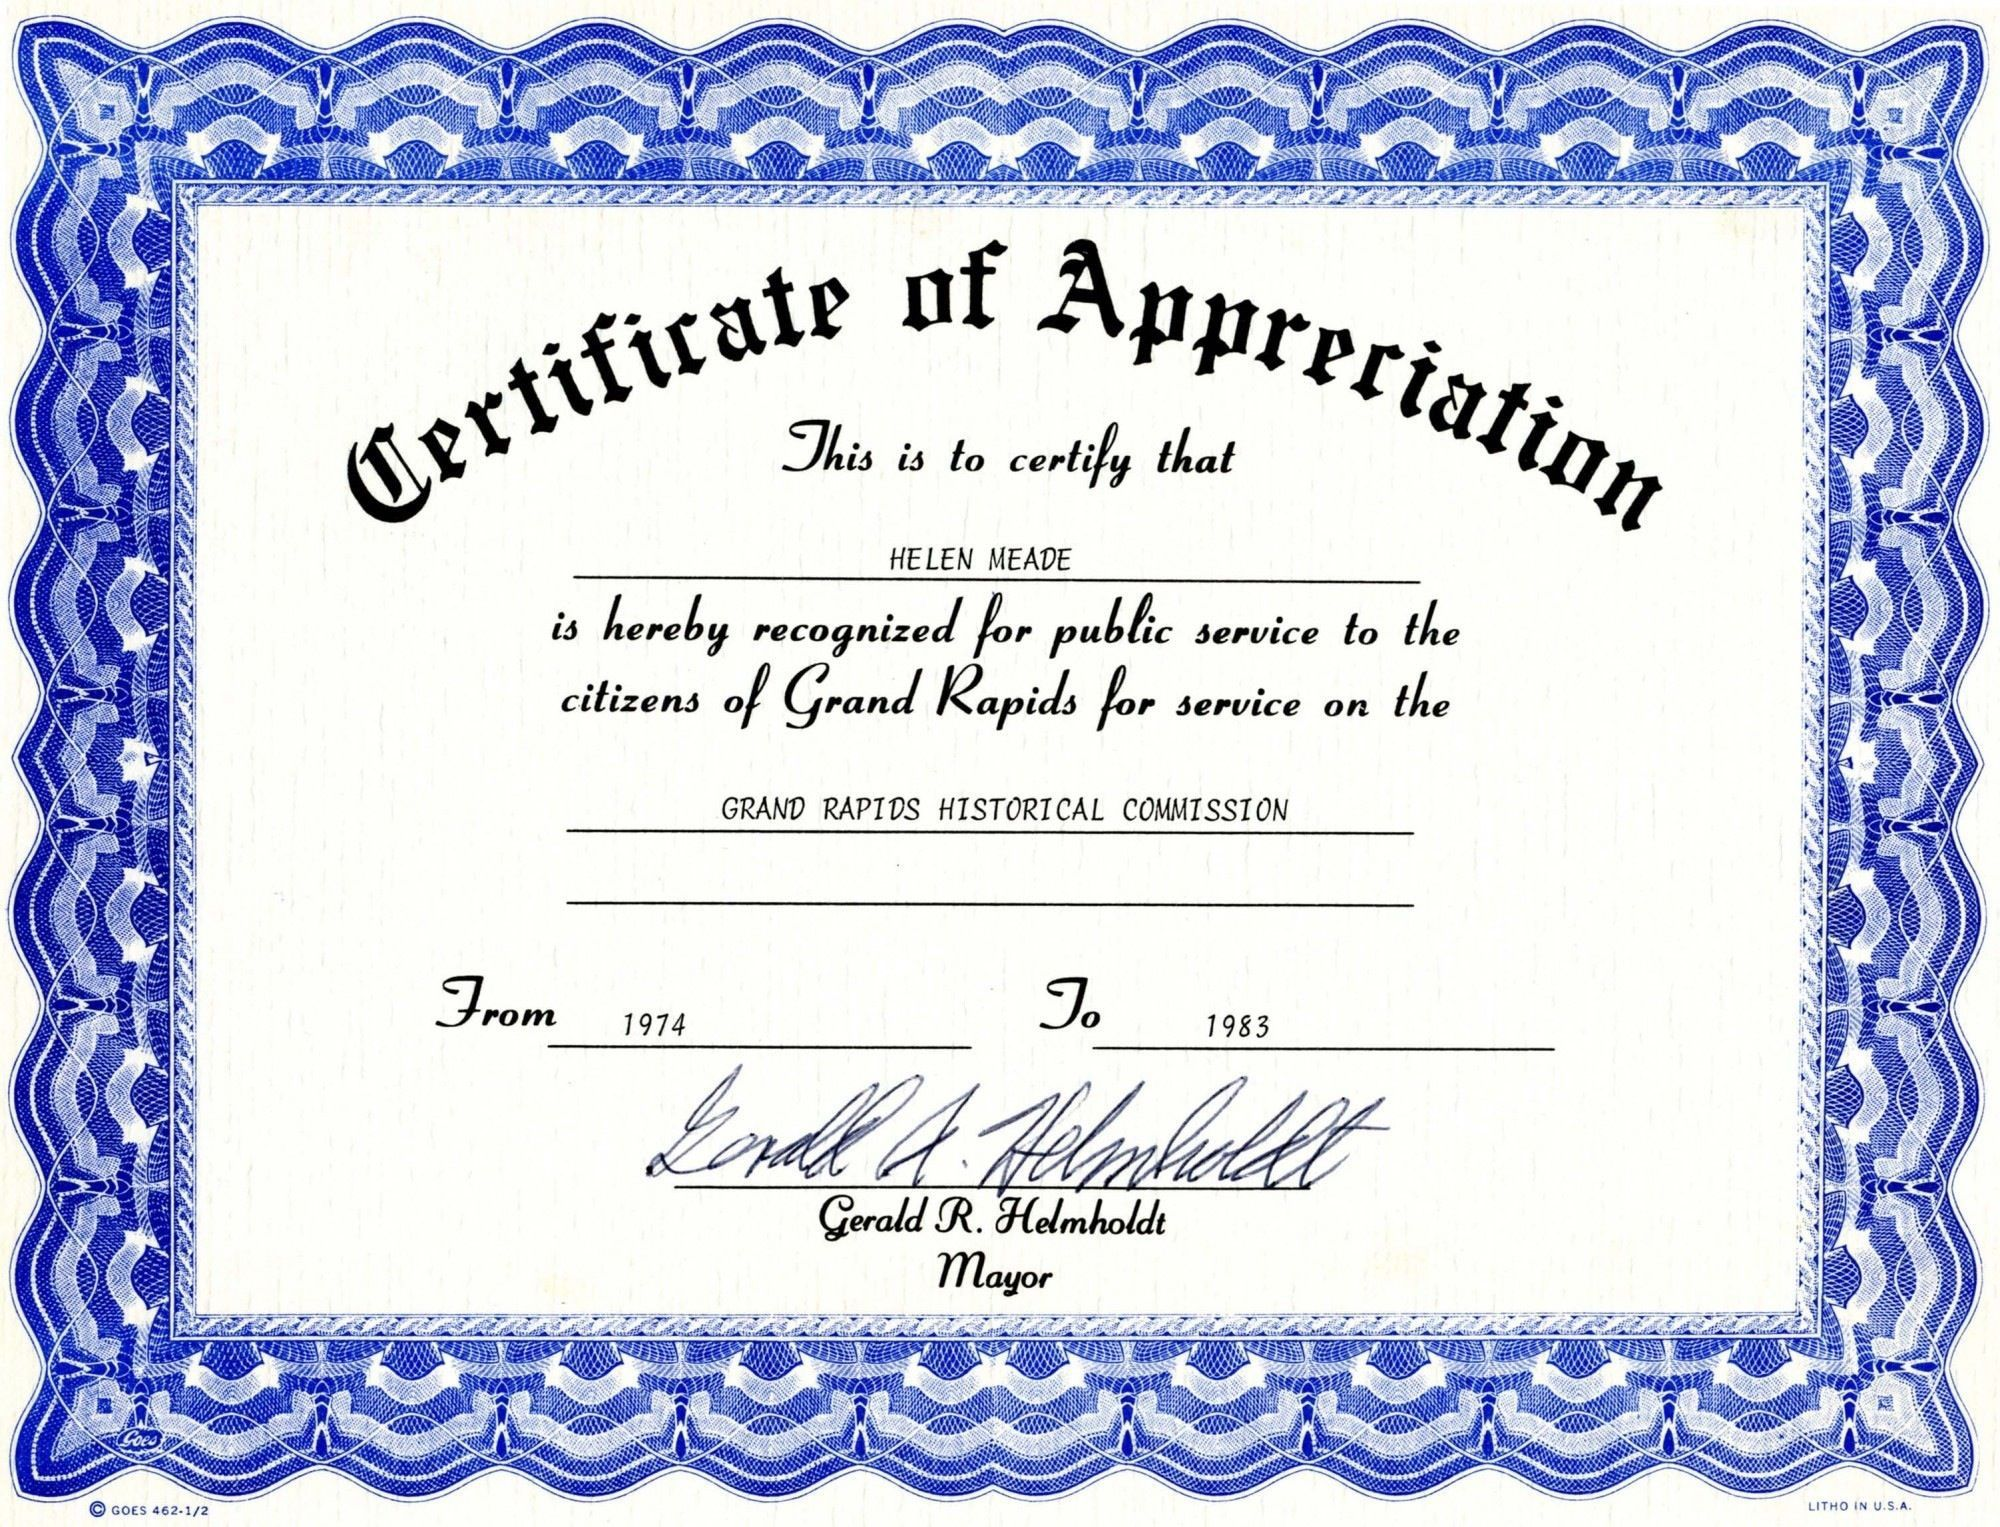 008 Simple Free Certificate Template Microsoft Word Design  Of Authenticity Art Puppy Birth MarriageFull